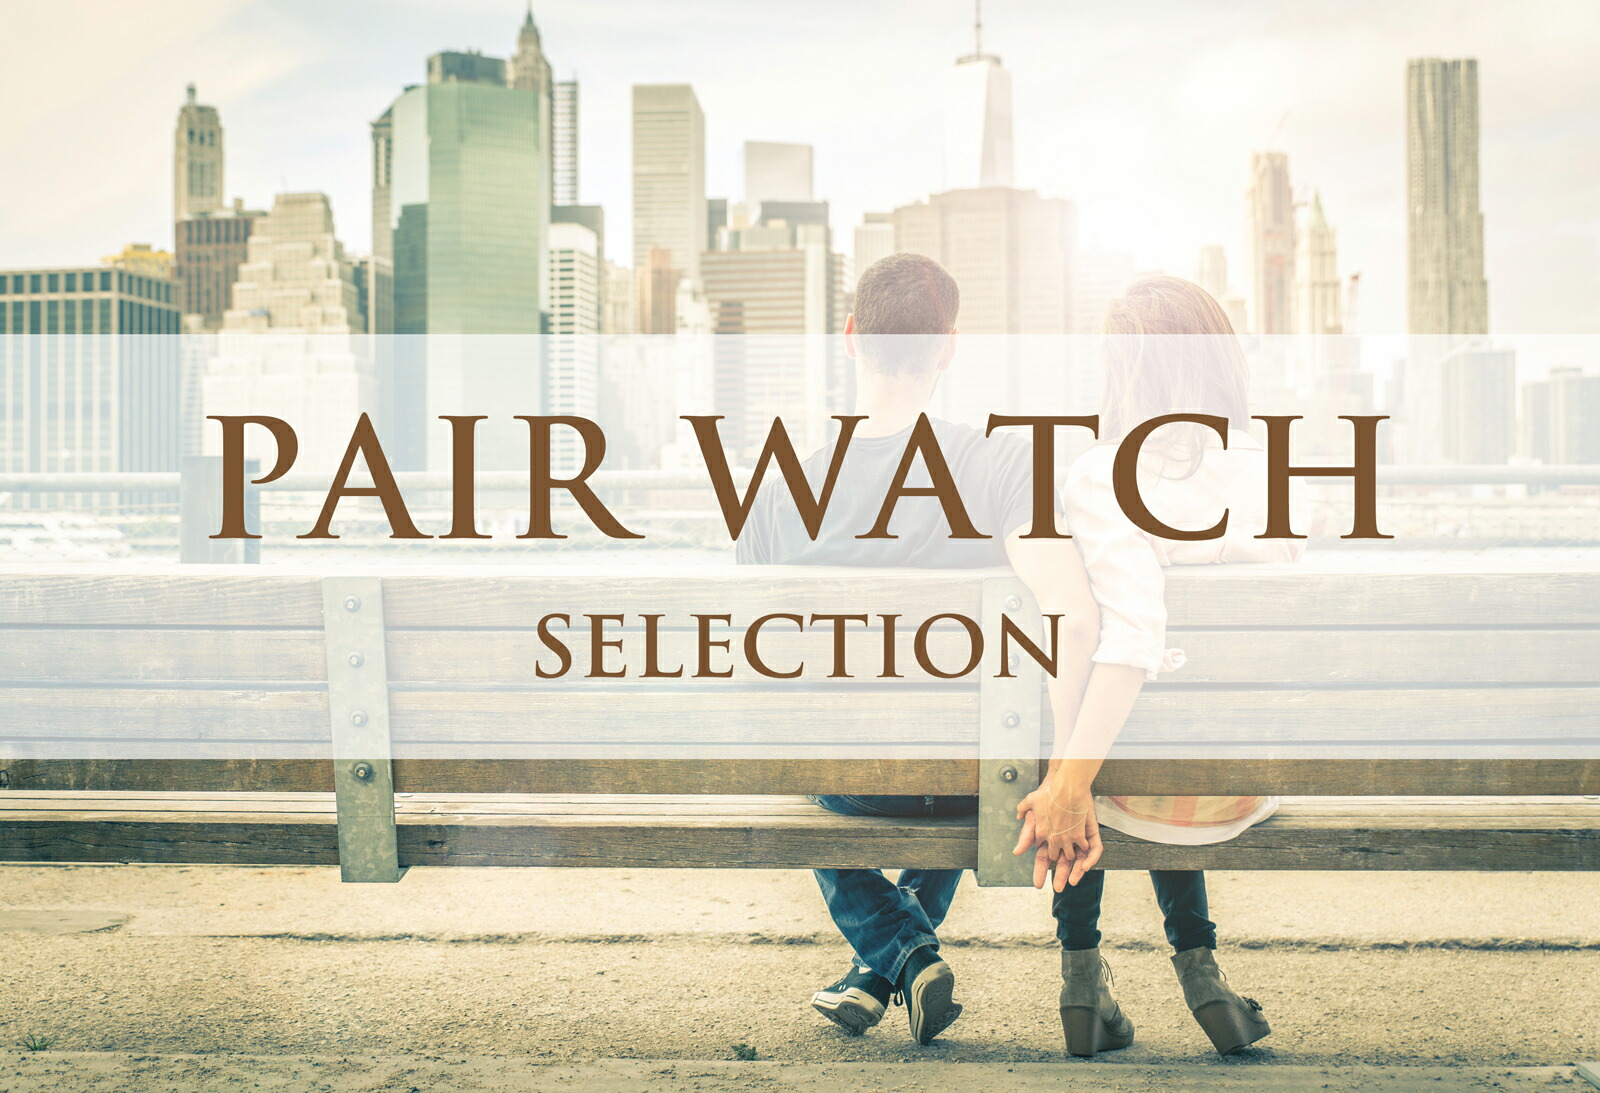 PAIR WATCH SELECTION